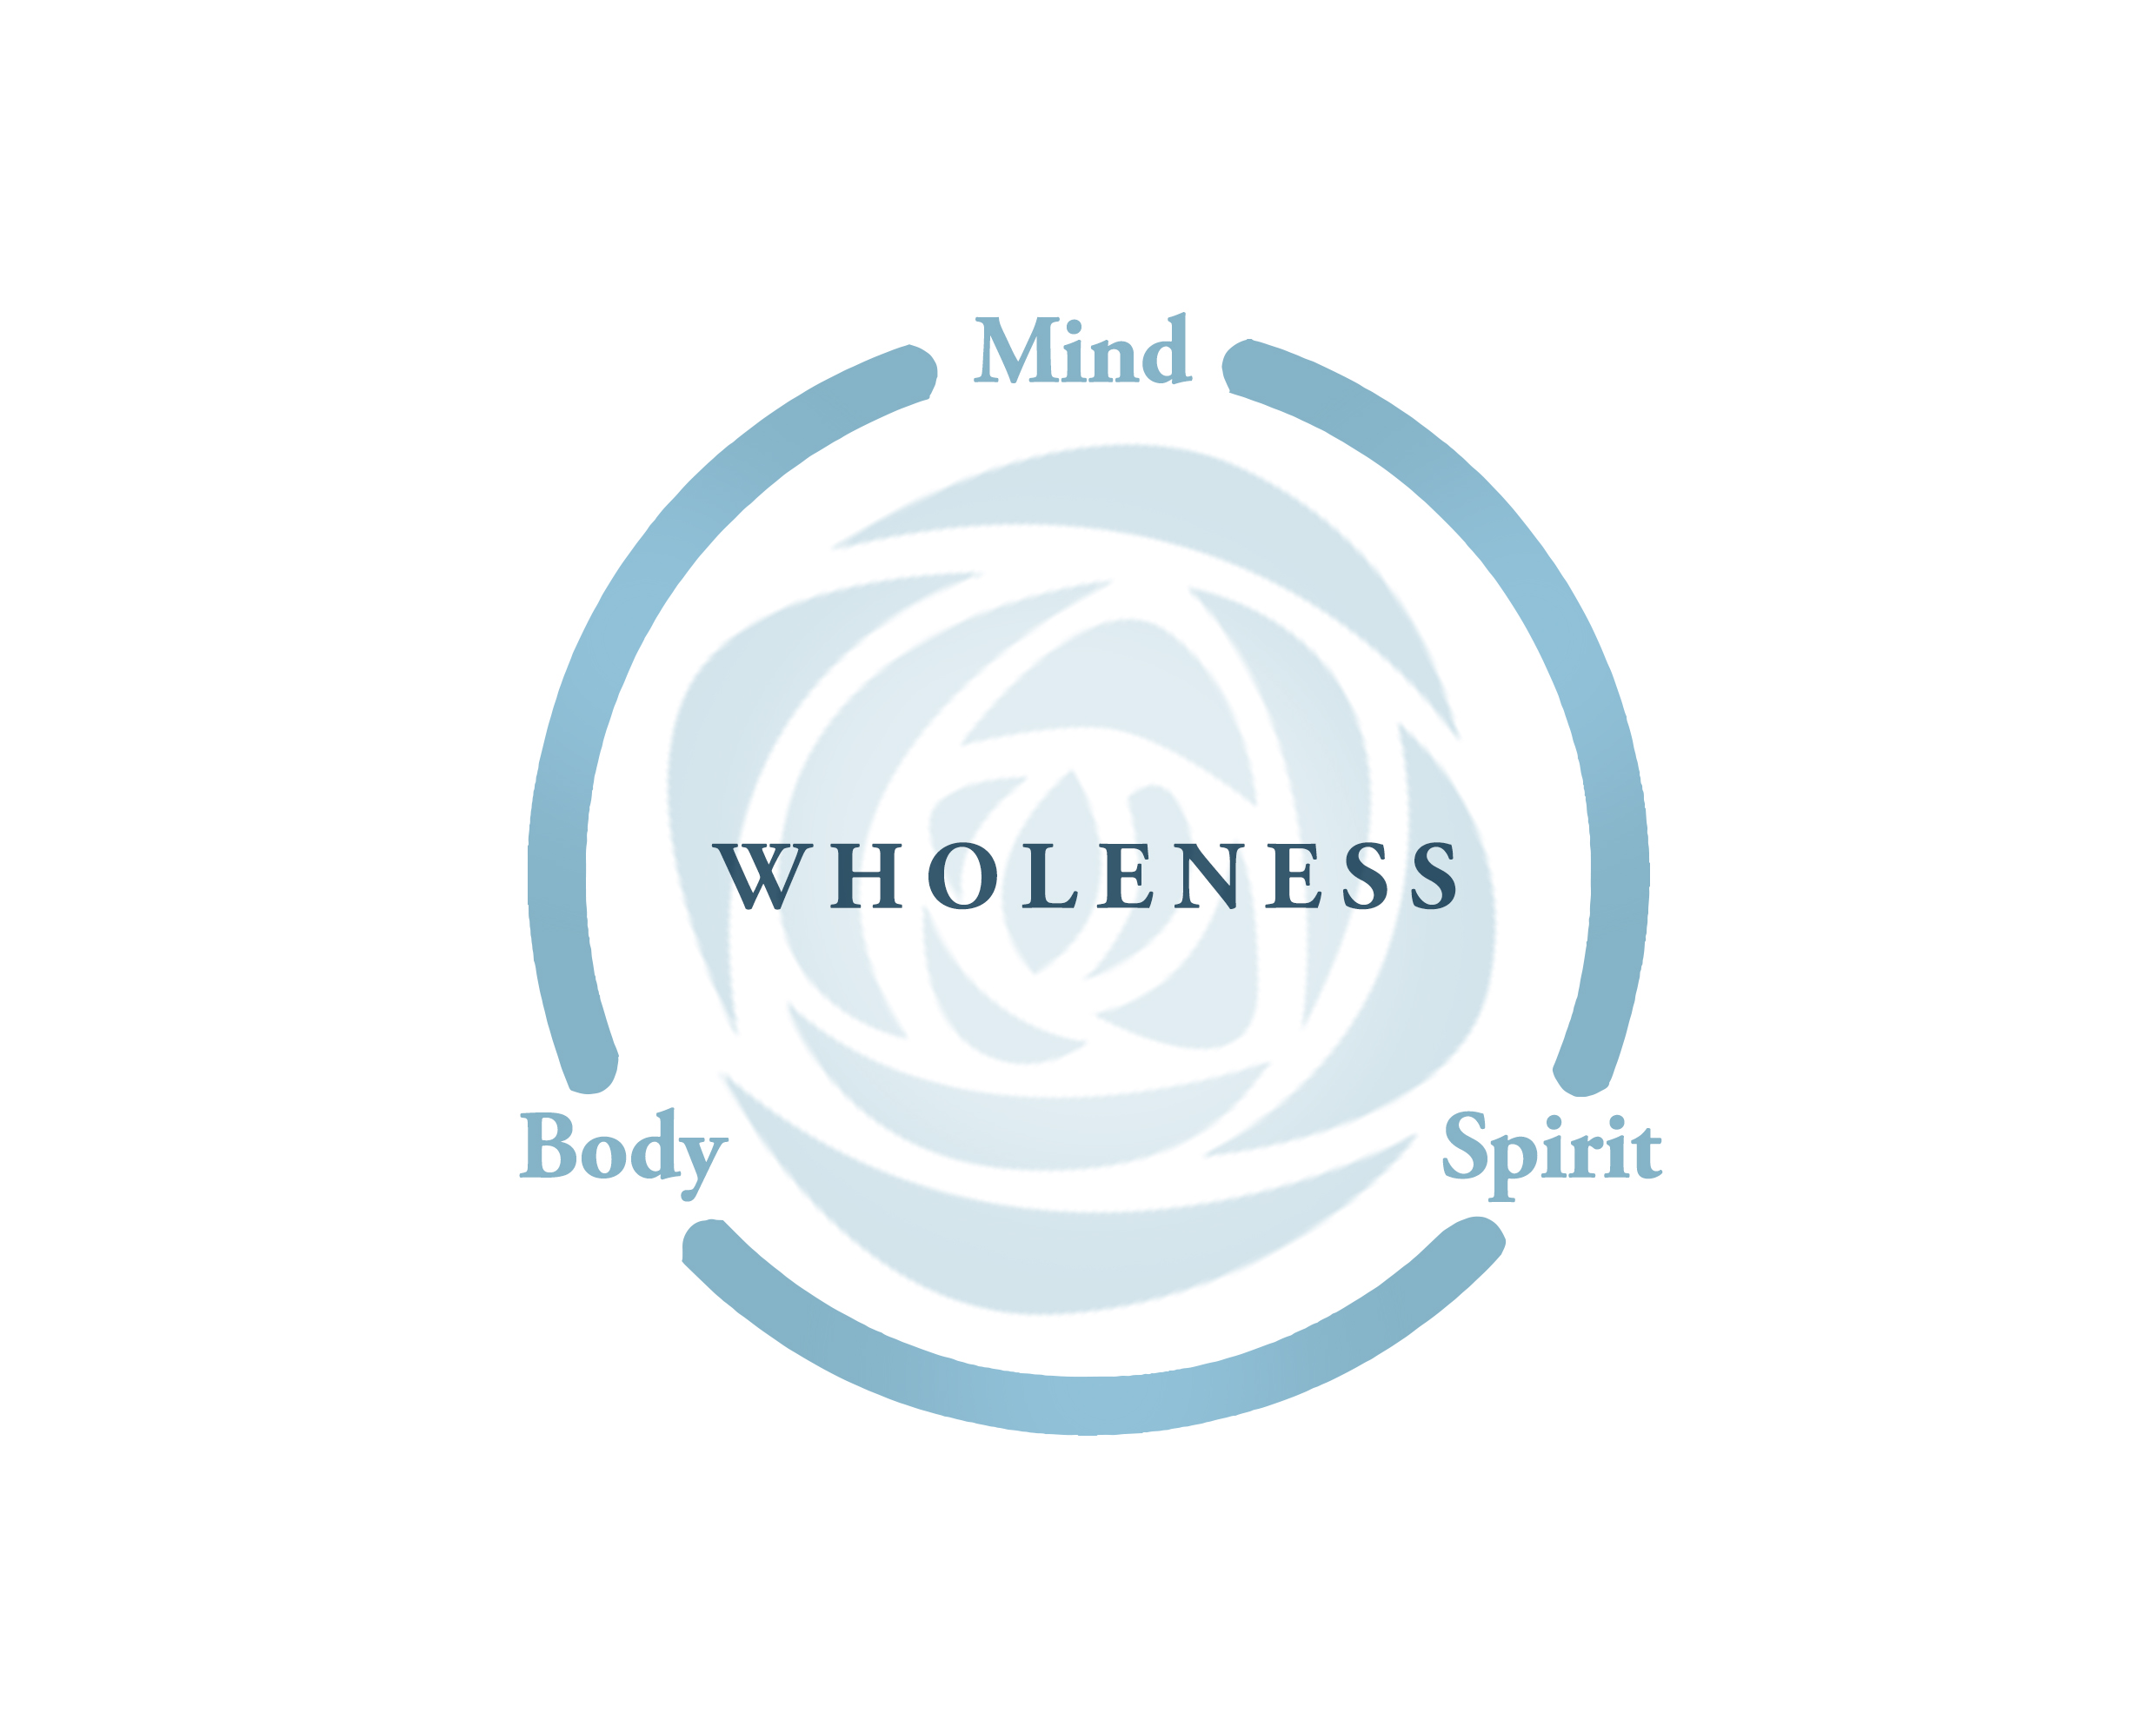 Wholeness Graphic